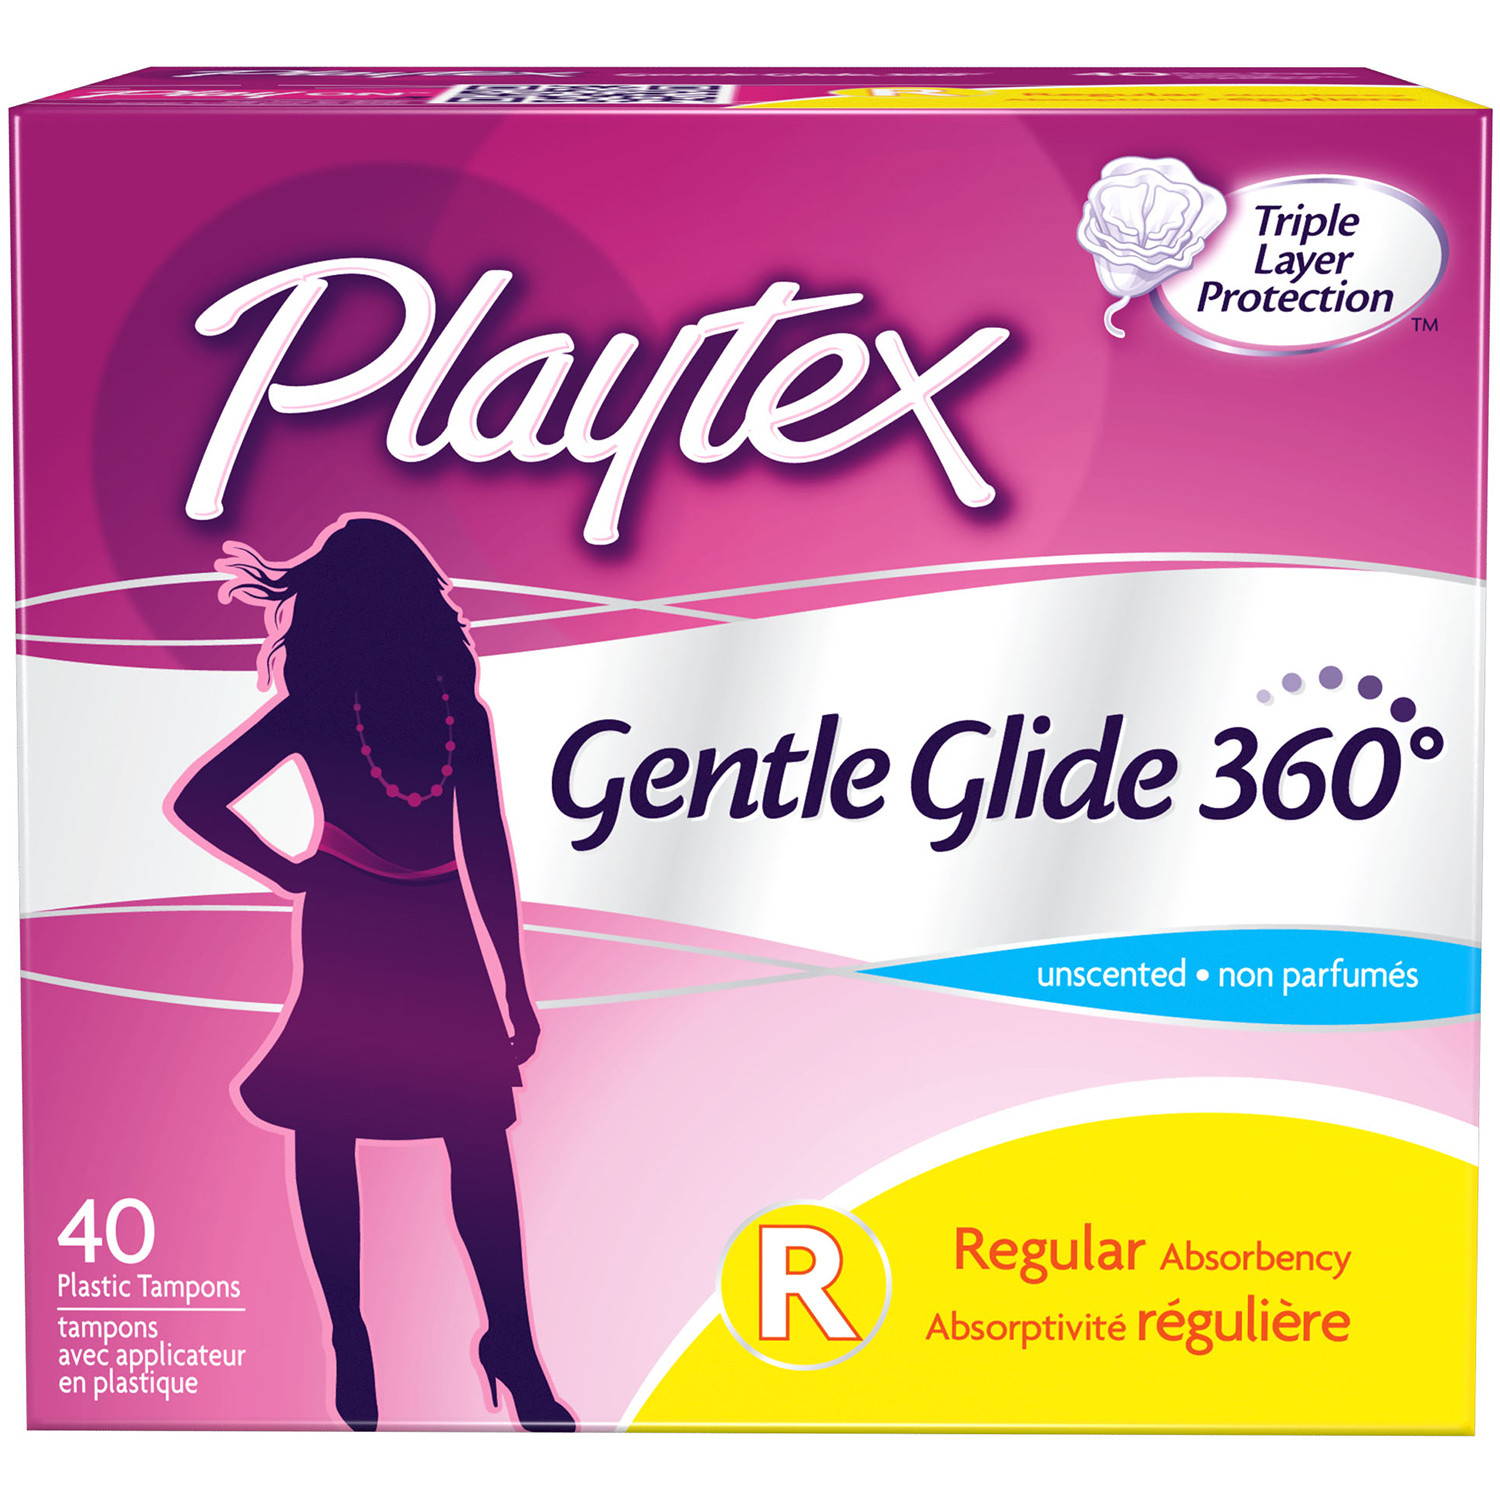 Playtex Gentle Glide Tampons Unscented Regular Absorbency - 40 Count